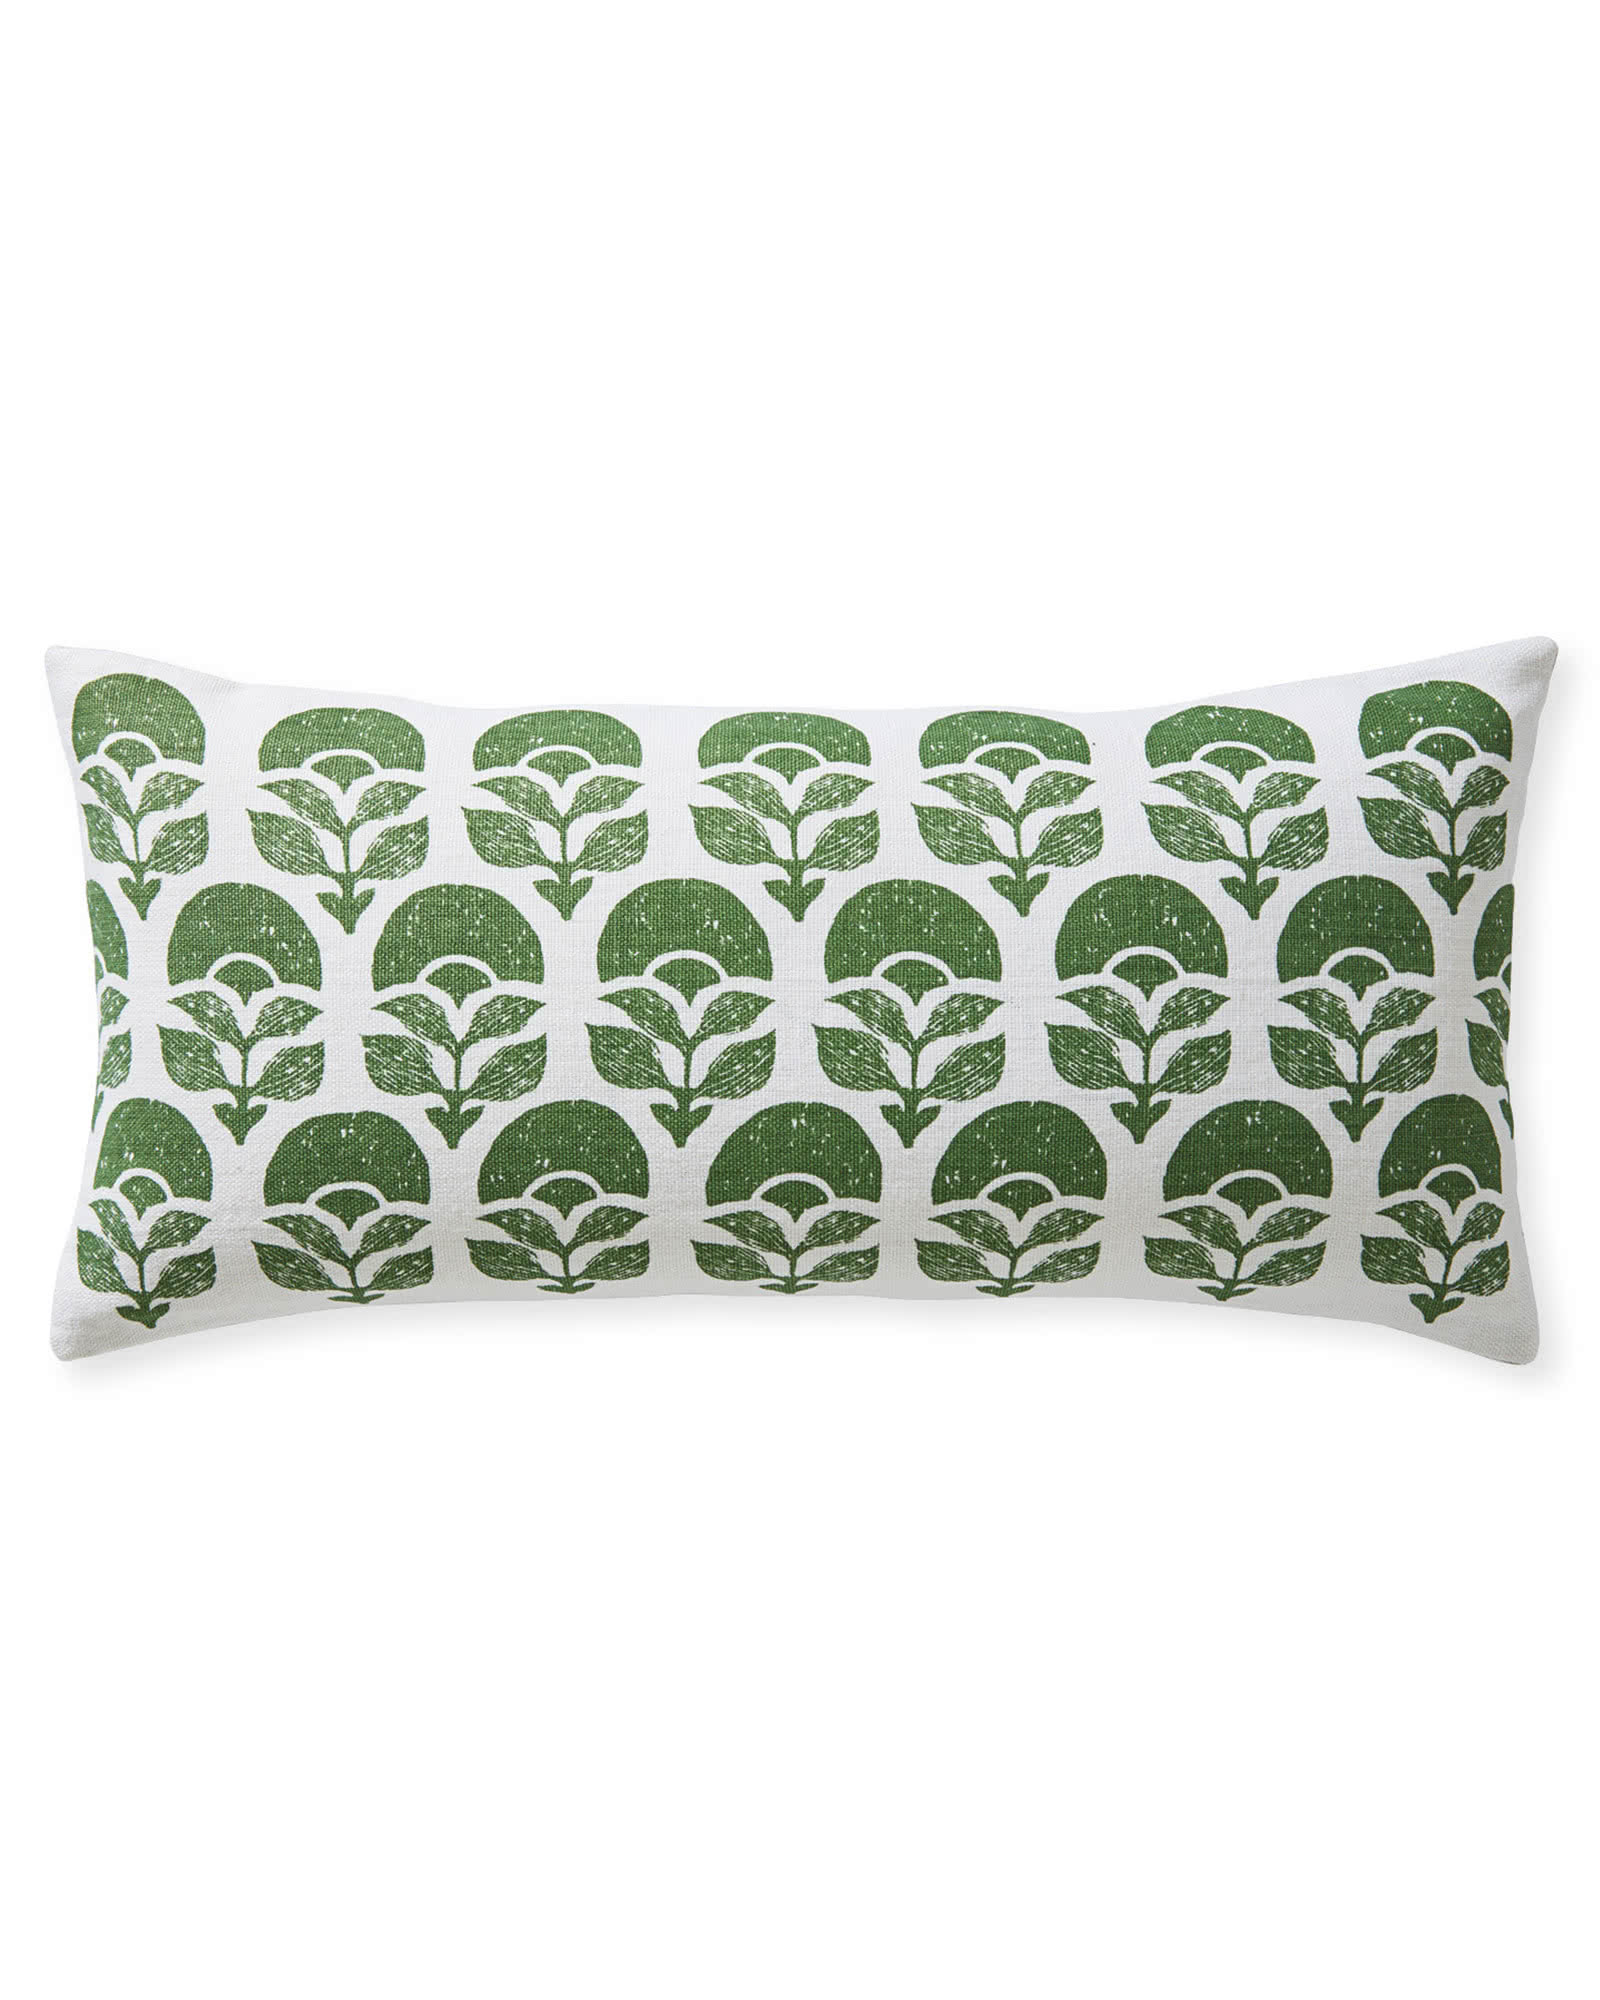 Larkspur Printed Pillow Cover, Moss